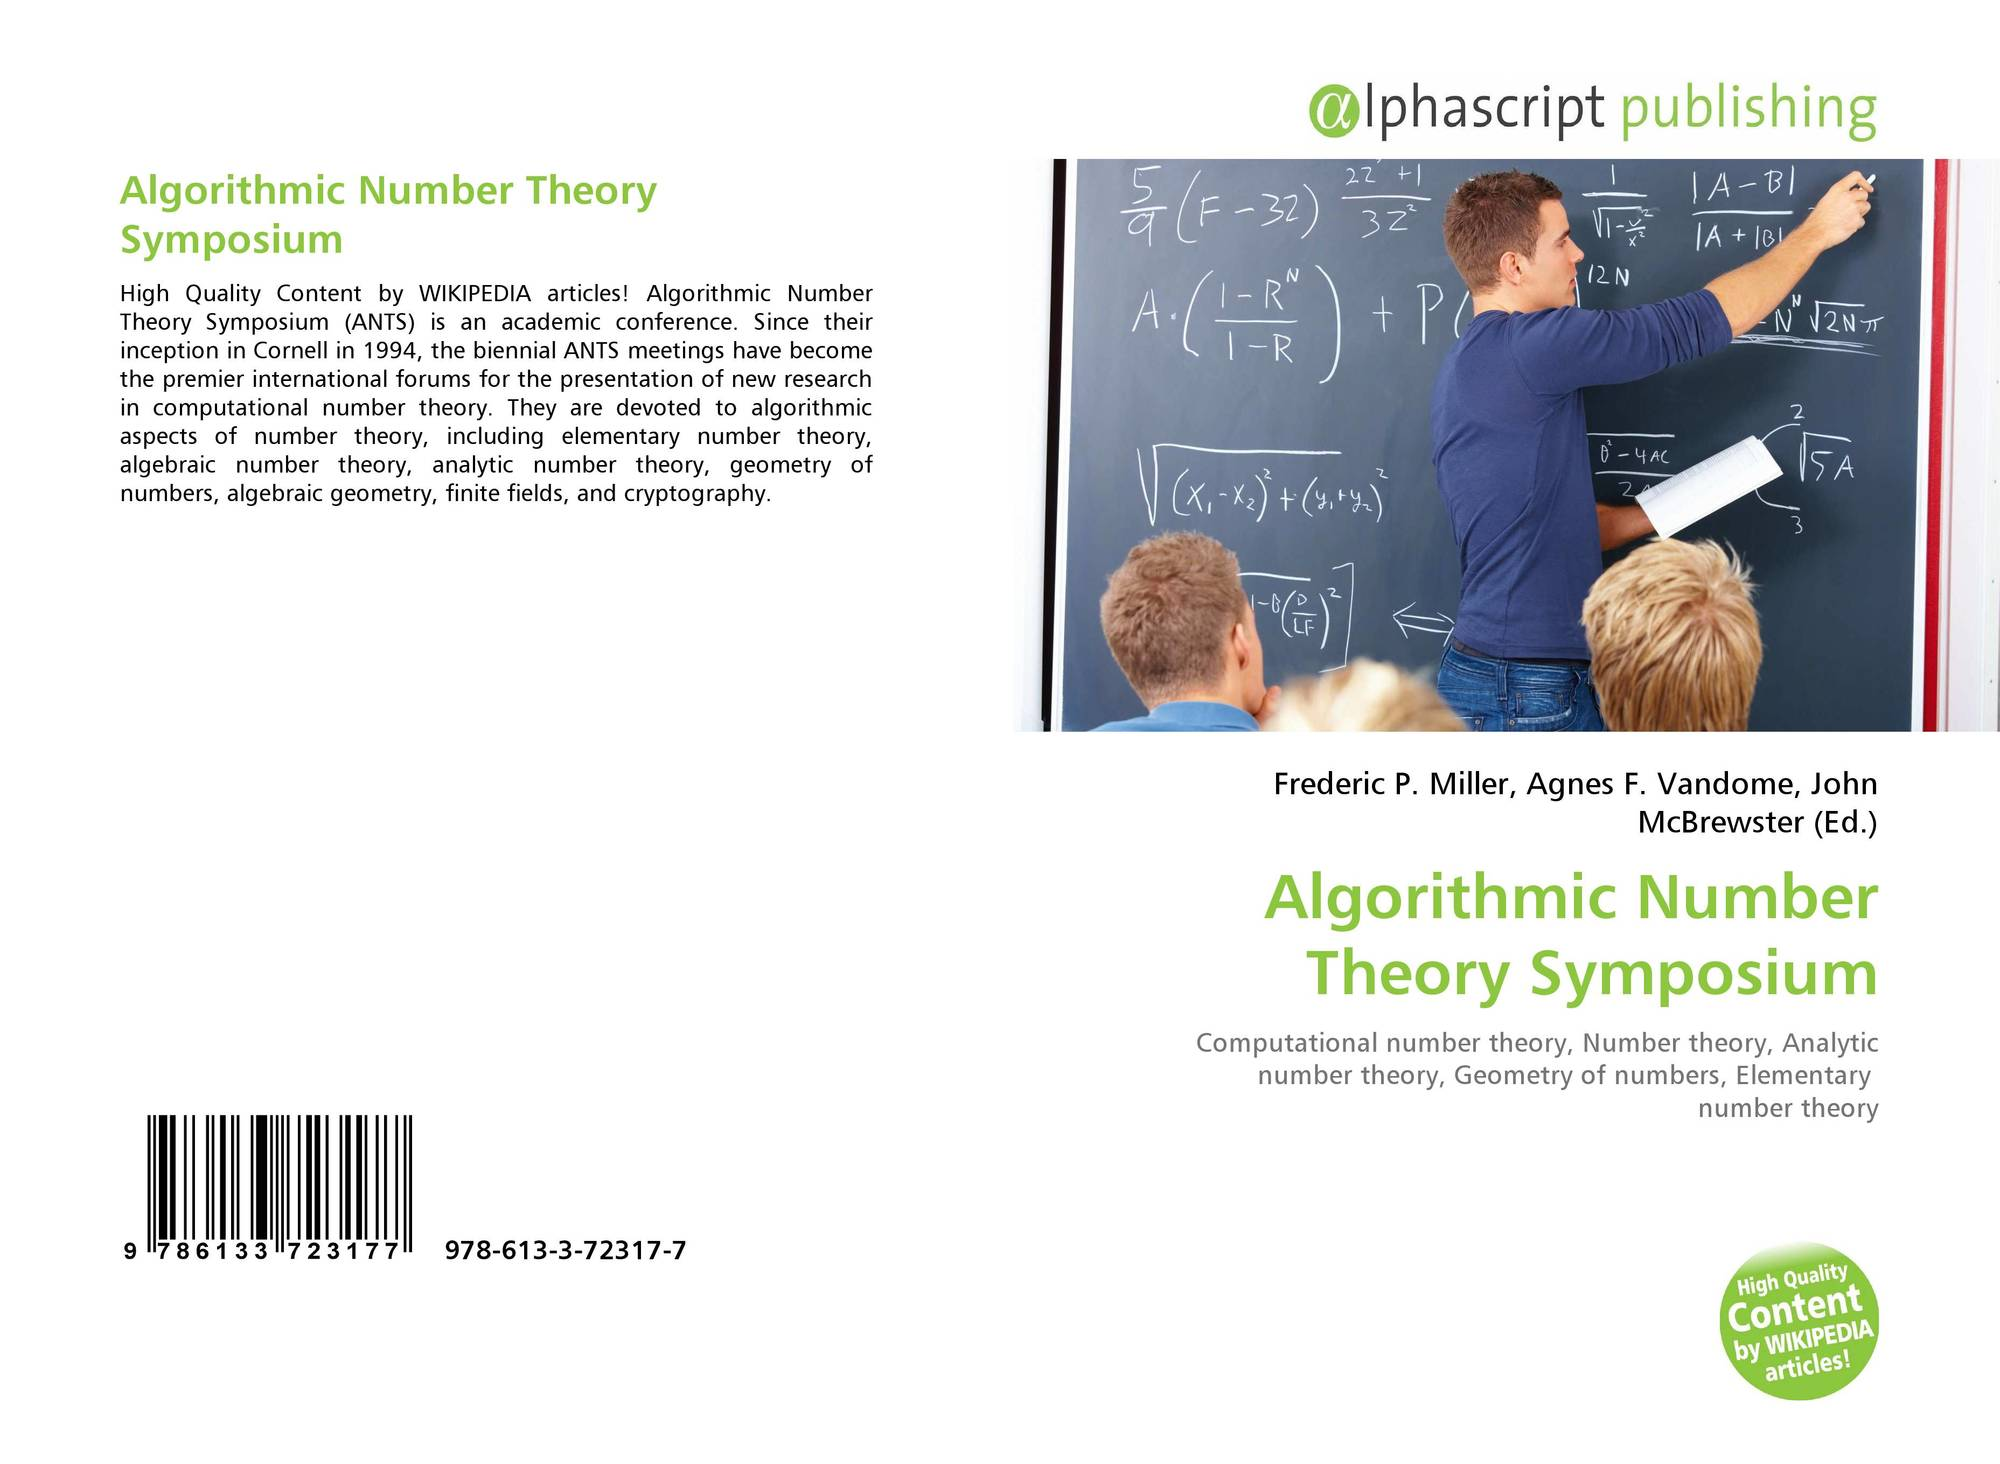 Algorithmic Number Theory Symposium, 978-613-3-72317-7